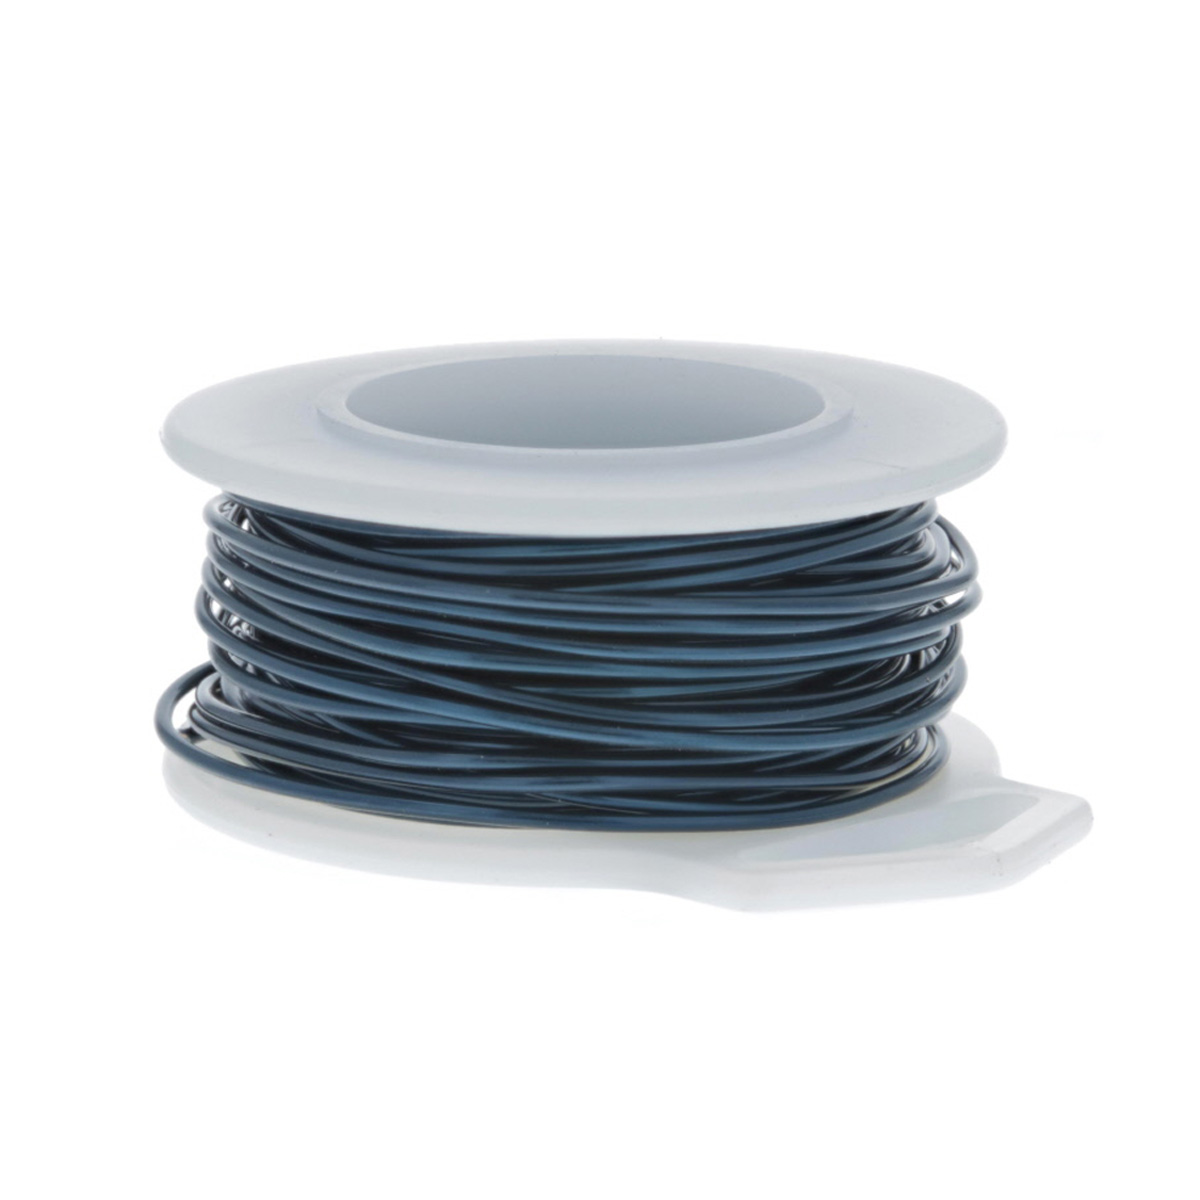 20 Gauge Round Blue Enameled Craft Wire - 30 ft: Wire Jewelry | Wire ...